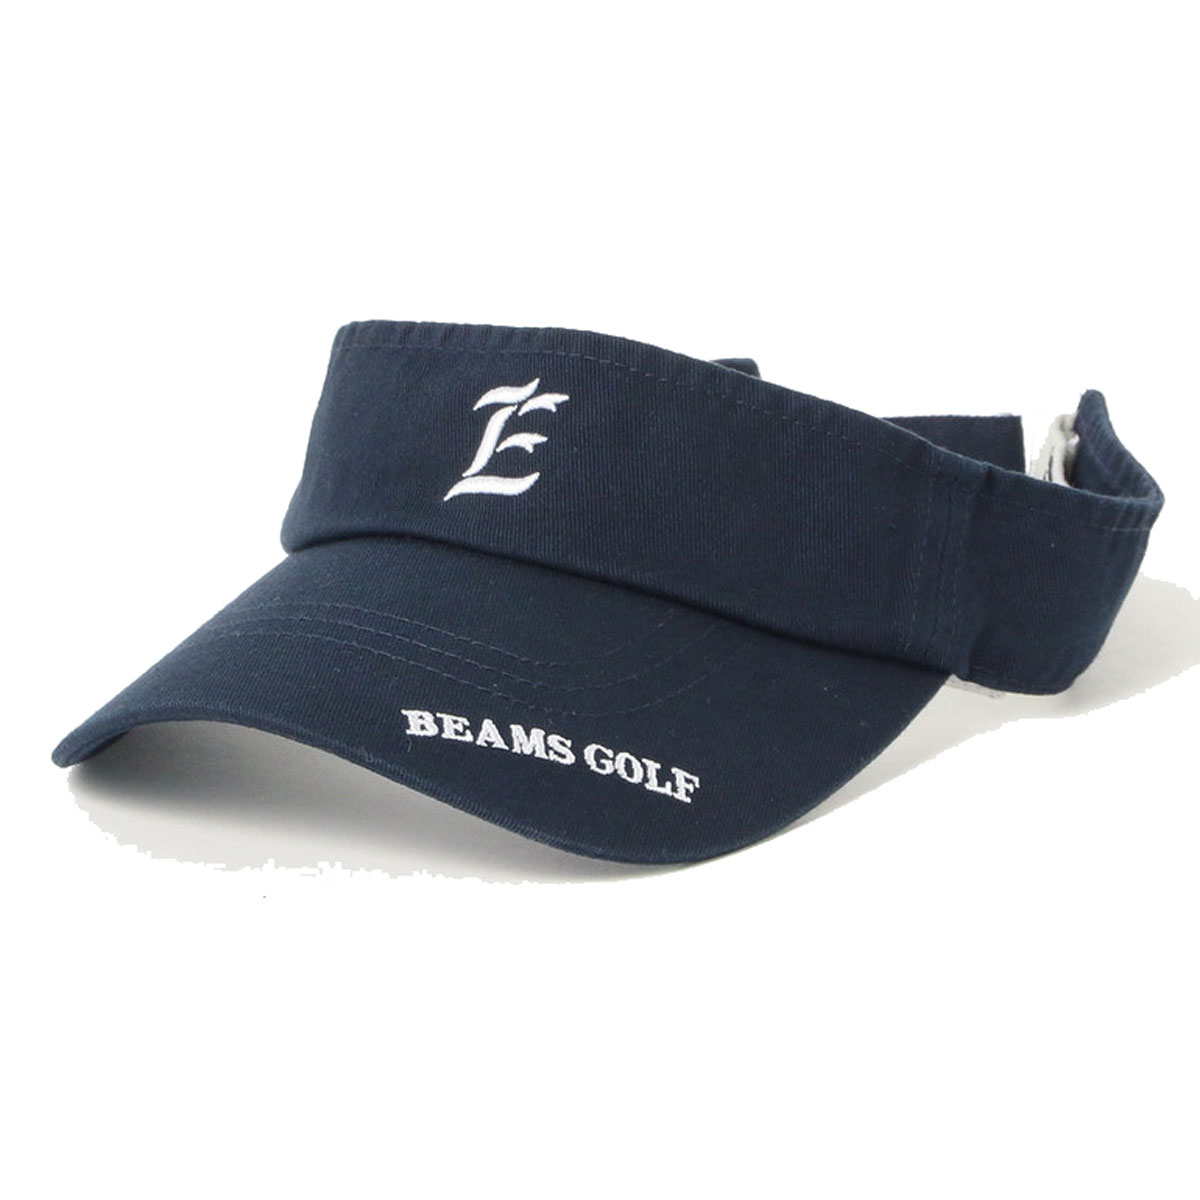 BEAMS GOLF PURPLE LABEL ロゴ サンバイザー 2019SS